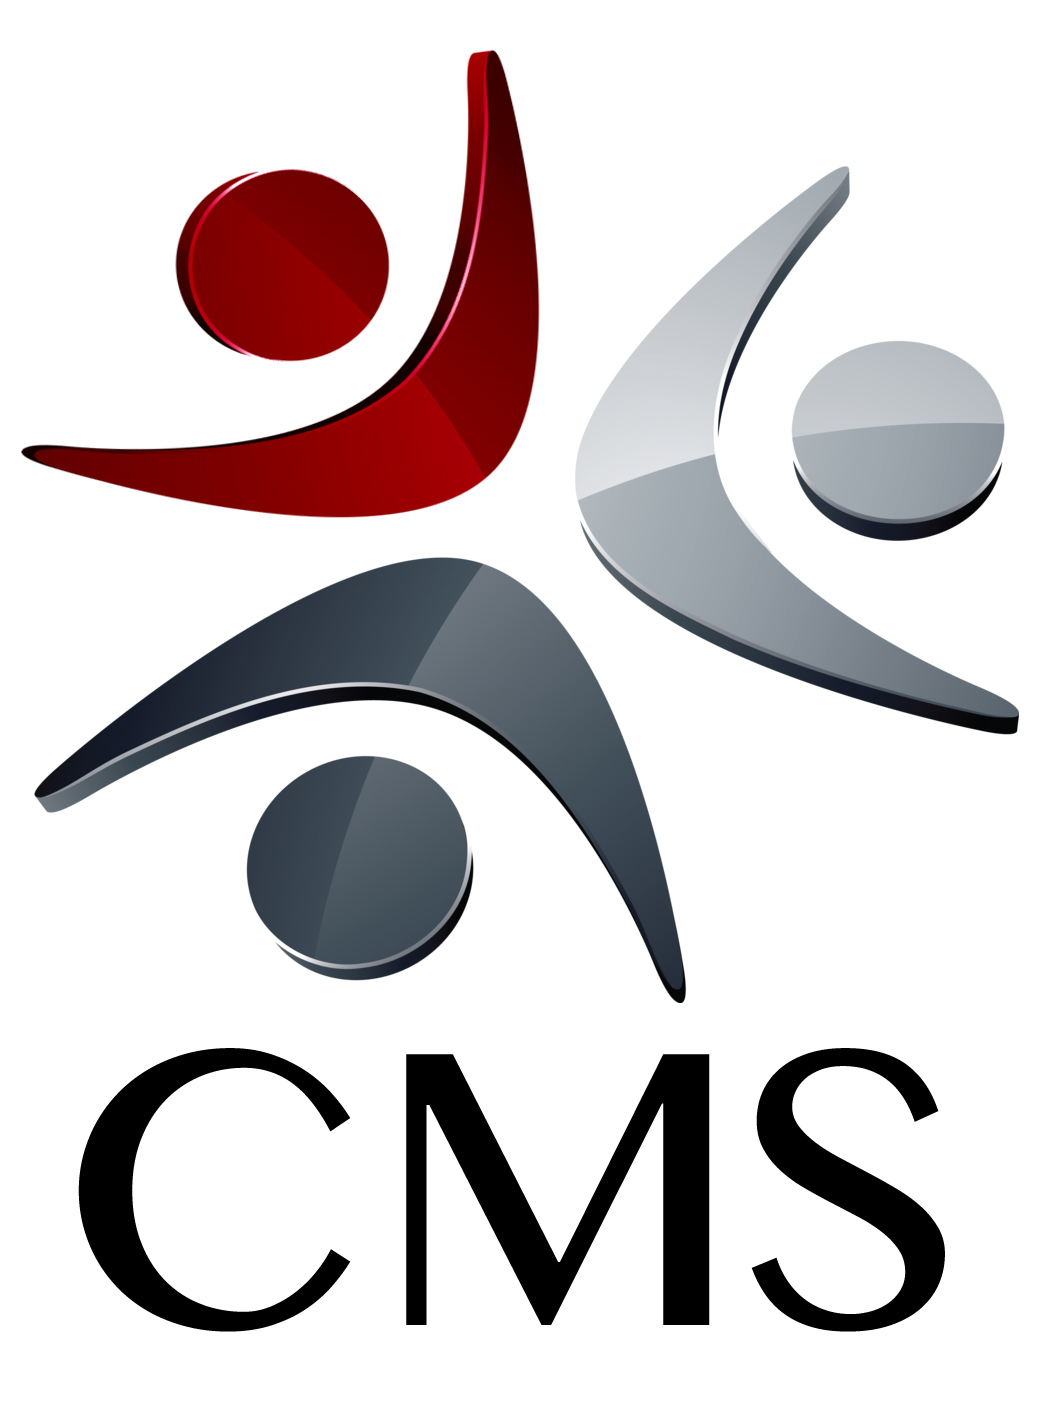 Civility management solutions cms receives sdvosb verification civility management solutions cms receives sdvosb verification from department of veterans affairs civility management solutions xflitez Gallery